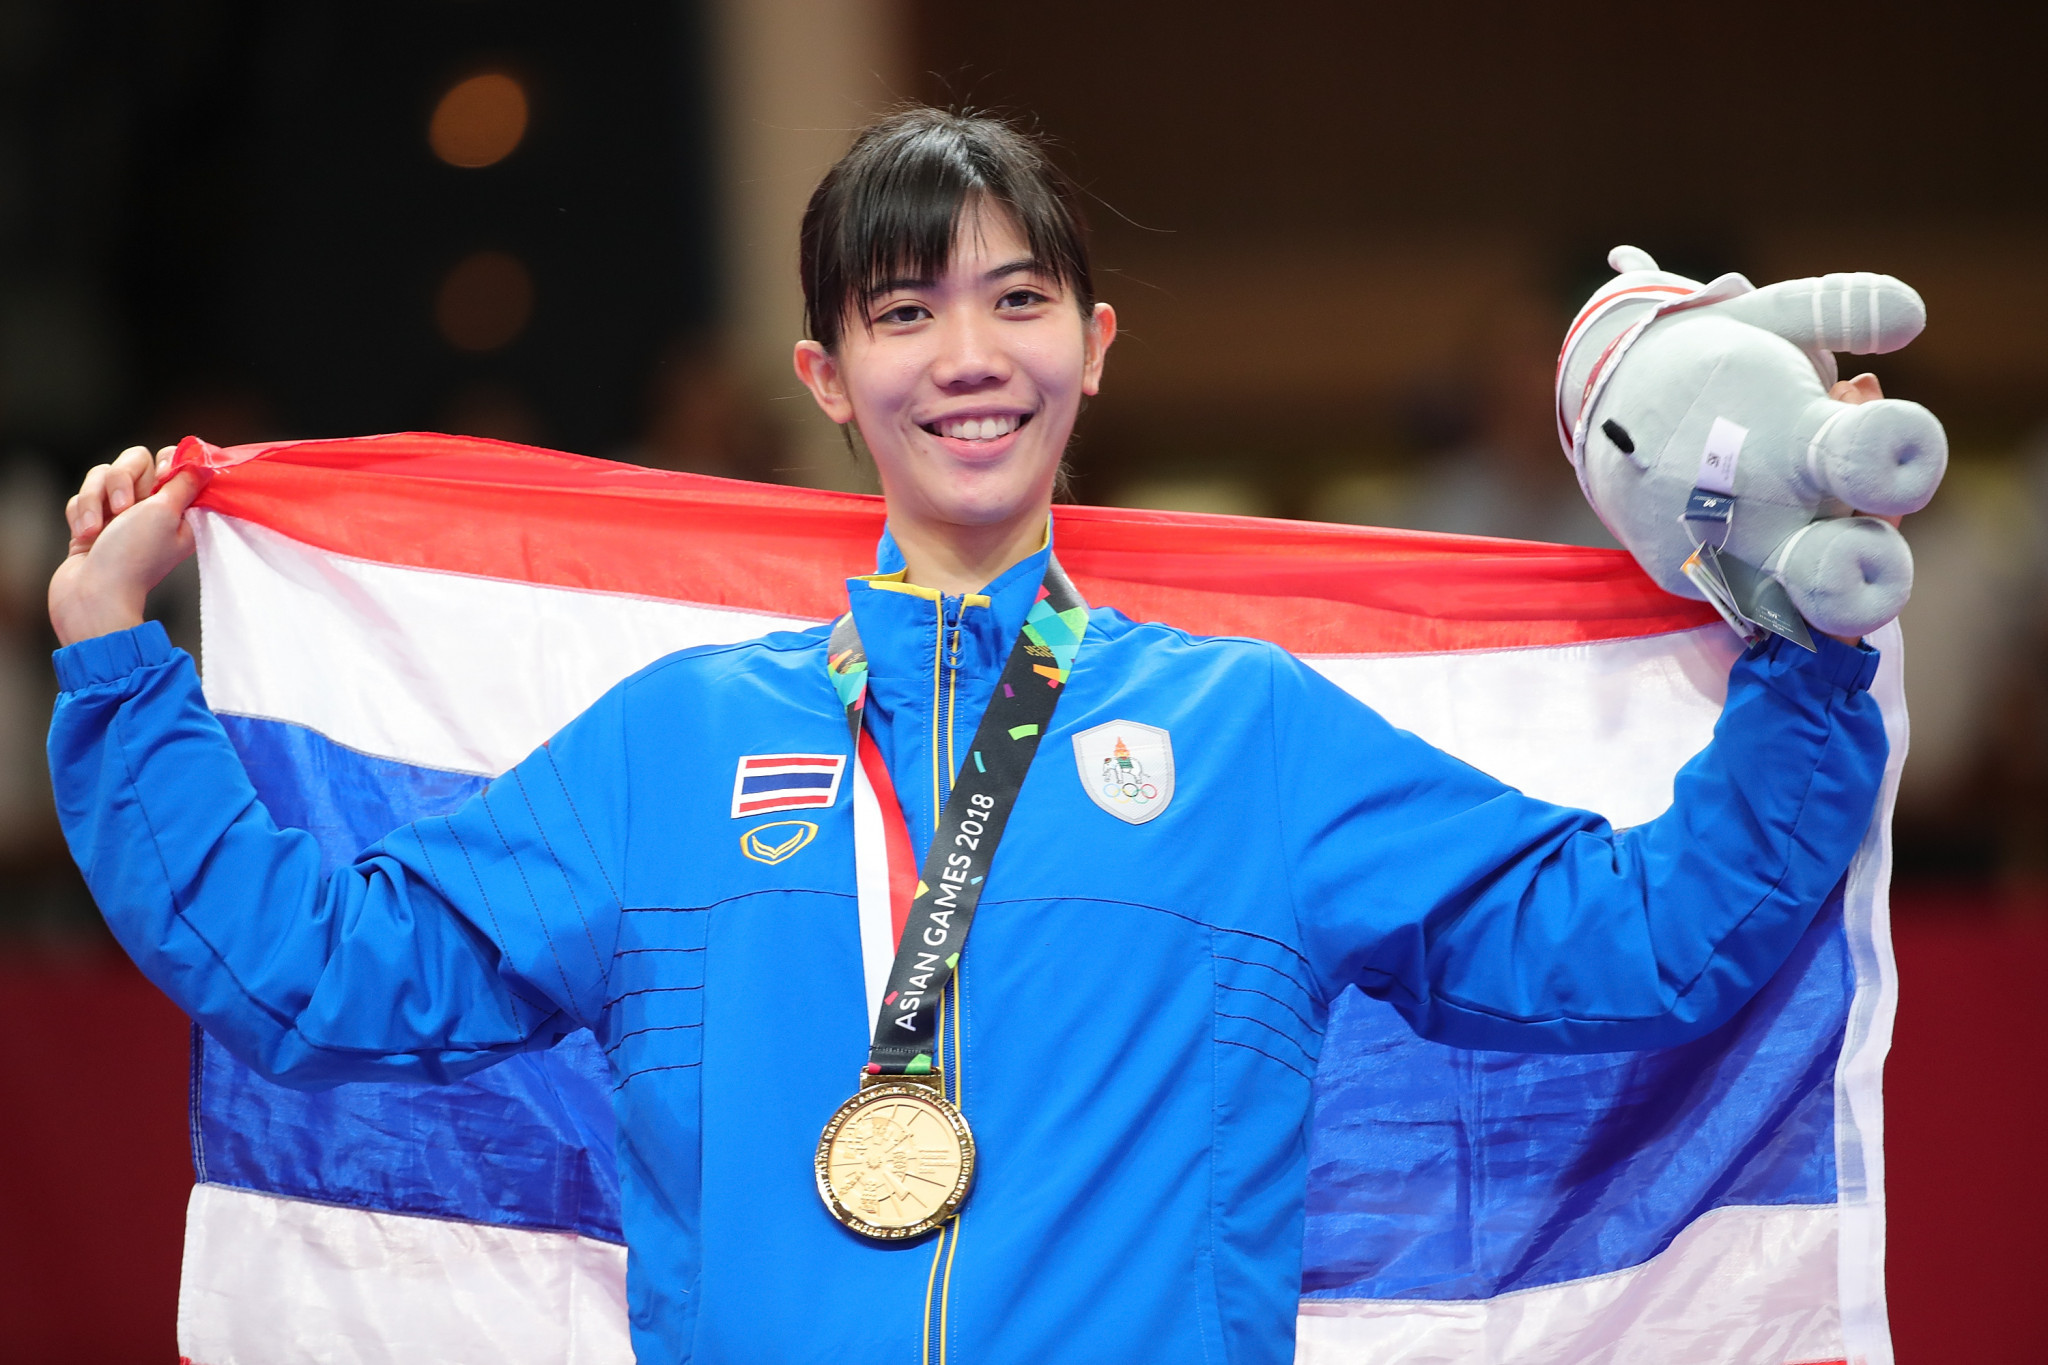 Thai taekwondo star Wongpattanakit predicts being in peak condition at Tokyo 2020